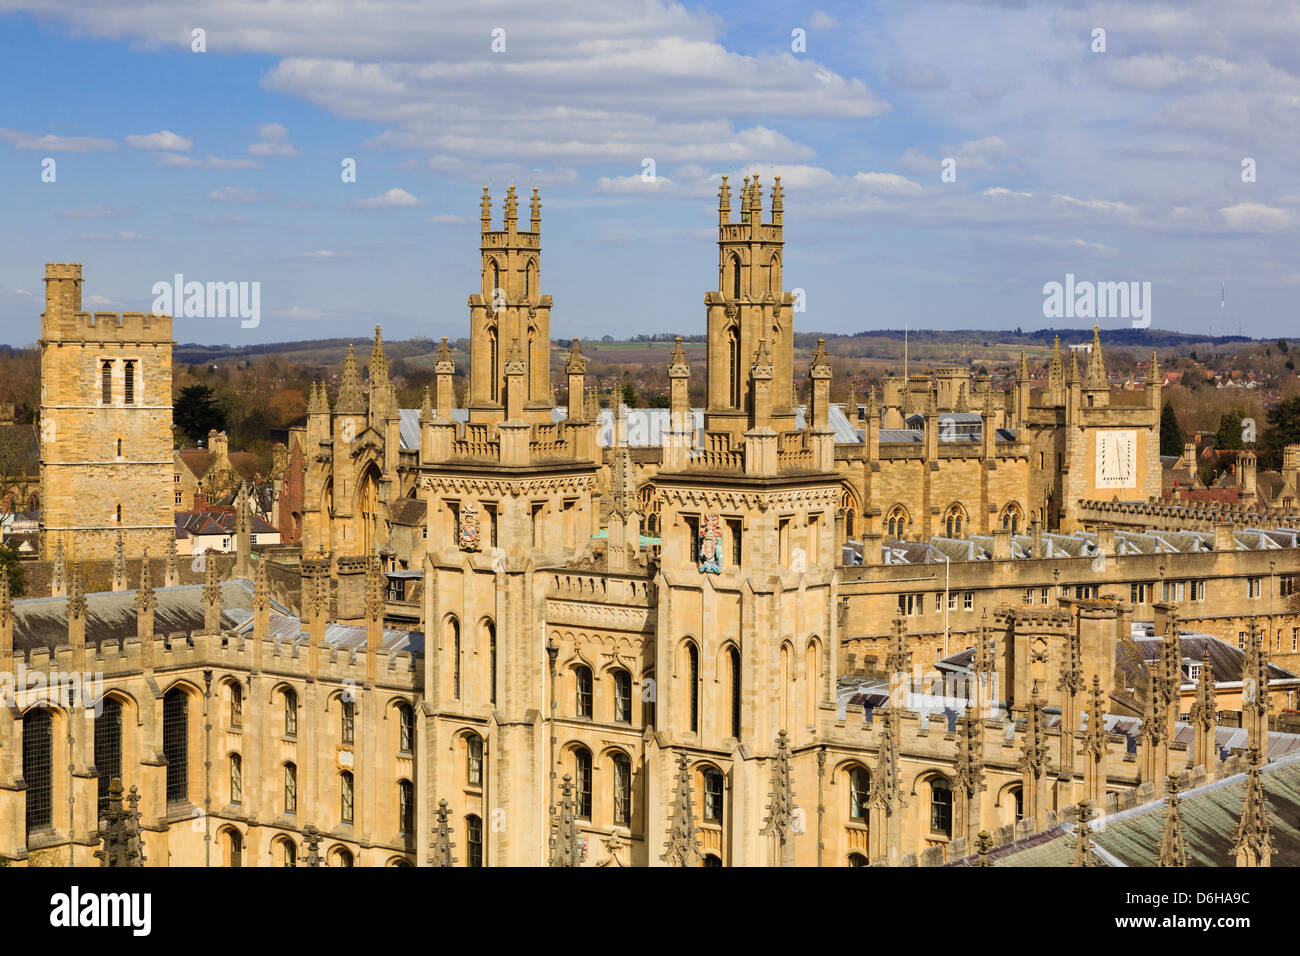 High view of Hawksmoor towers of All Souls College, the all fellows university. Oxford, Oxfordshire, England, UK, - Stock Image